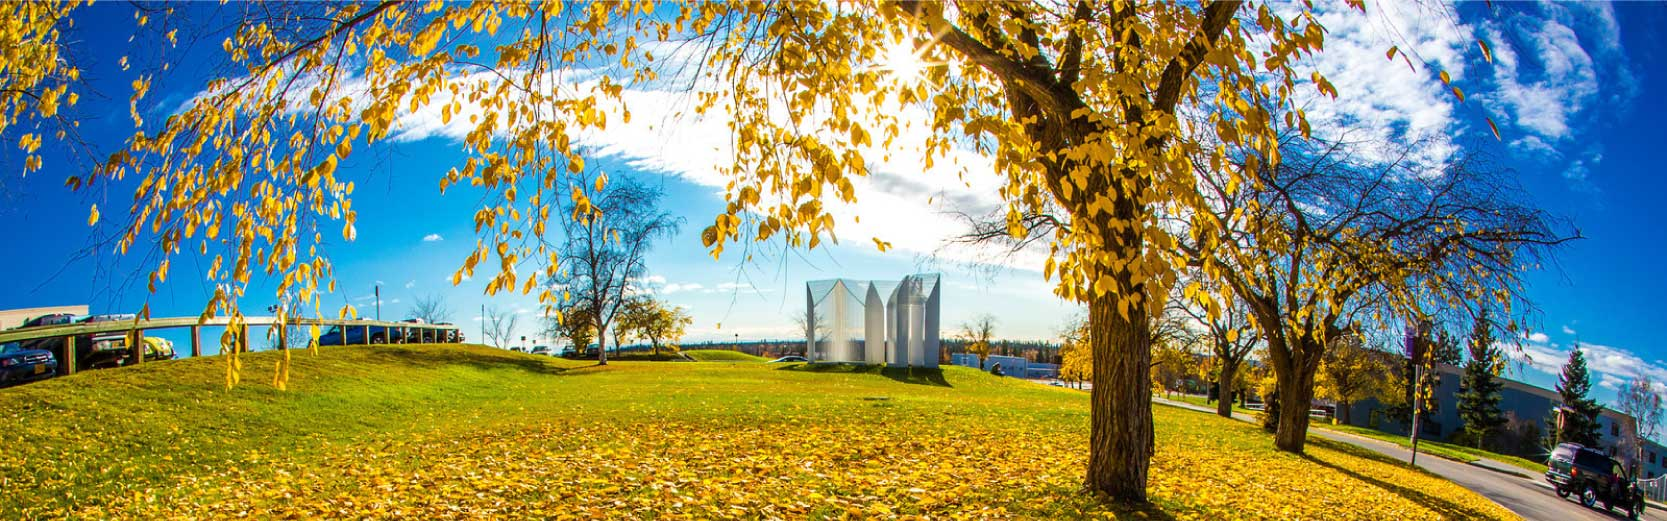 Panoramic photo of autumn trees and the Elysian sculpture on the Fairbanks campus